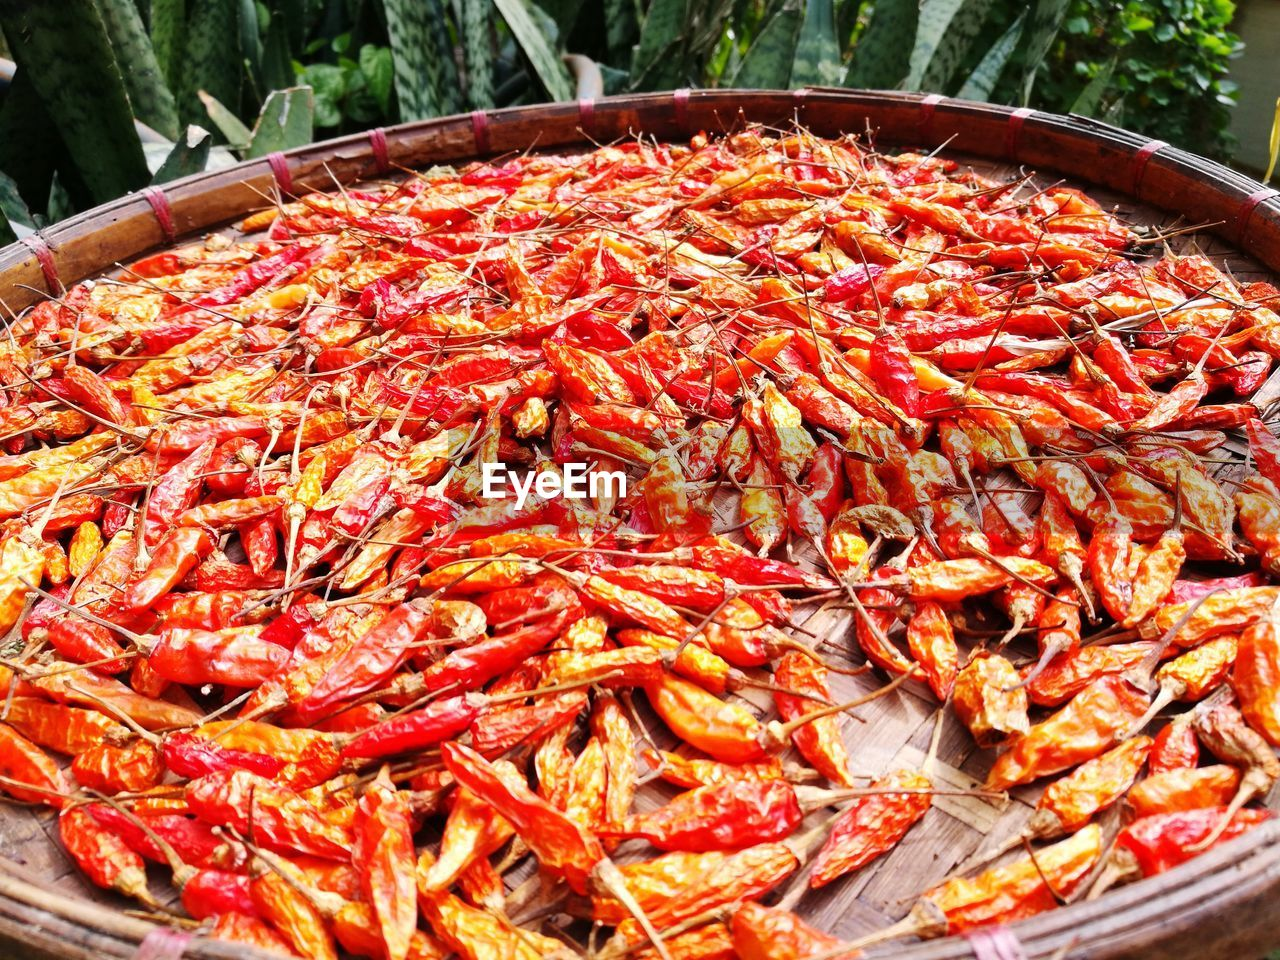 seafood, food and drink, food, no people, red, high angle view, animal themes, outdoors, day, prawn, large group of animals, close-up, large group of objects, freshness, healthy eating, nature